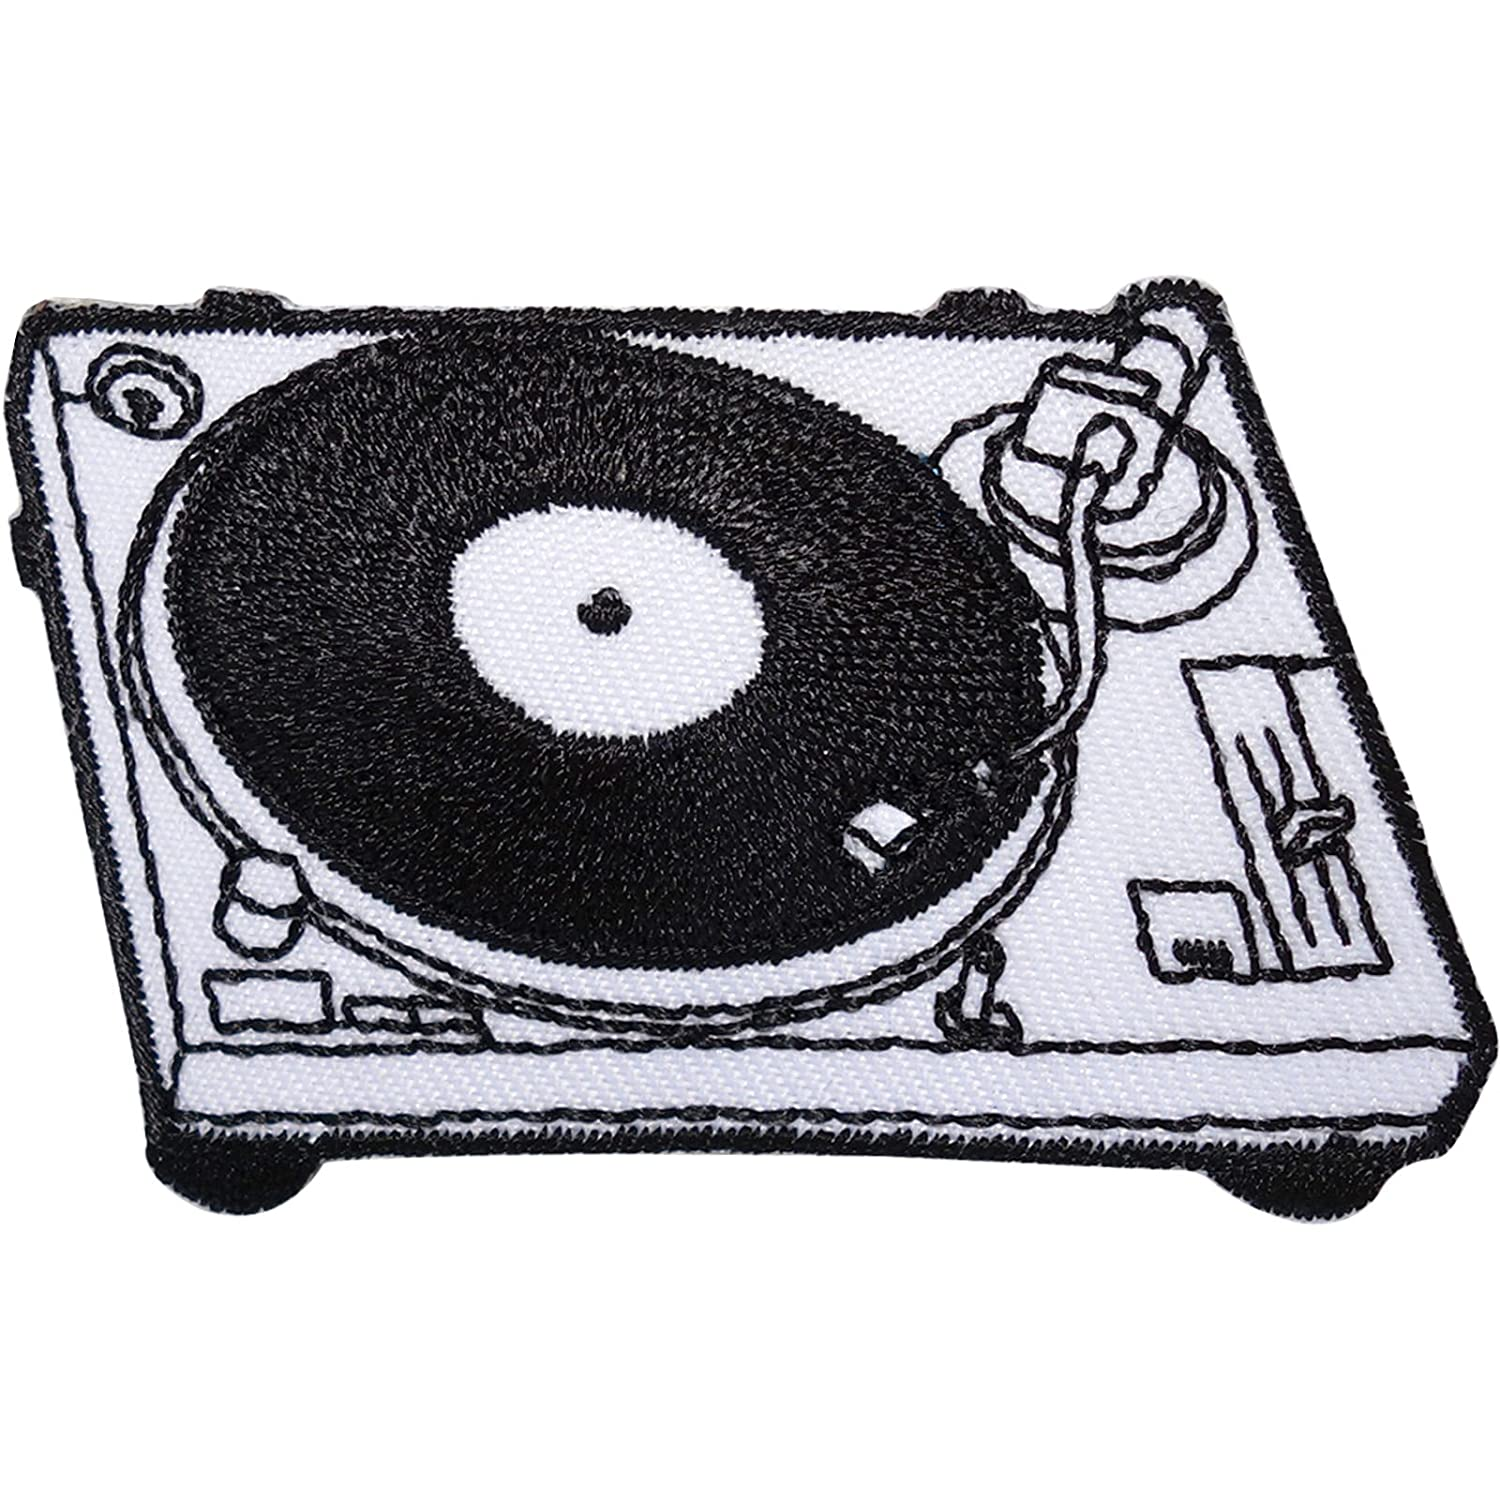 DJ Deck Turntable Embroidered Iron Sew On Patch Record Player Bag Clothes Badge ELLU